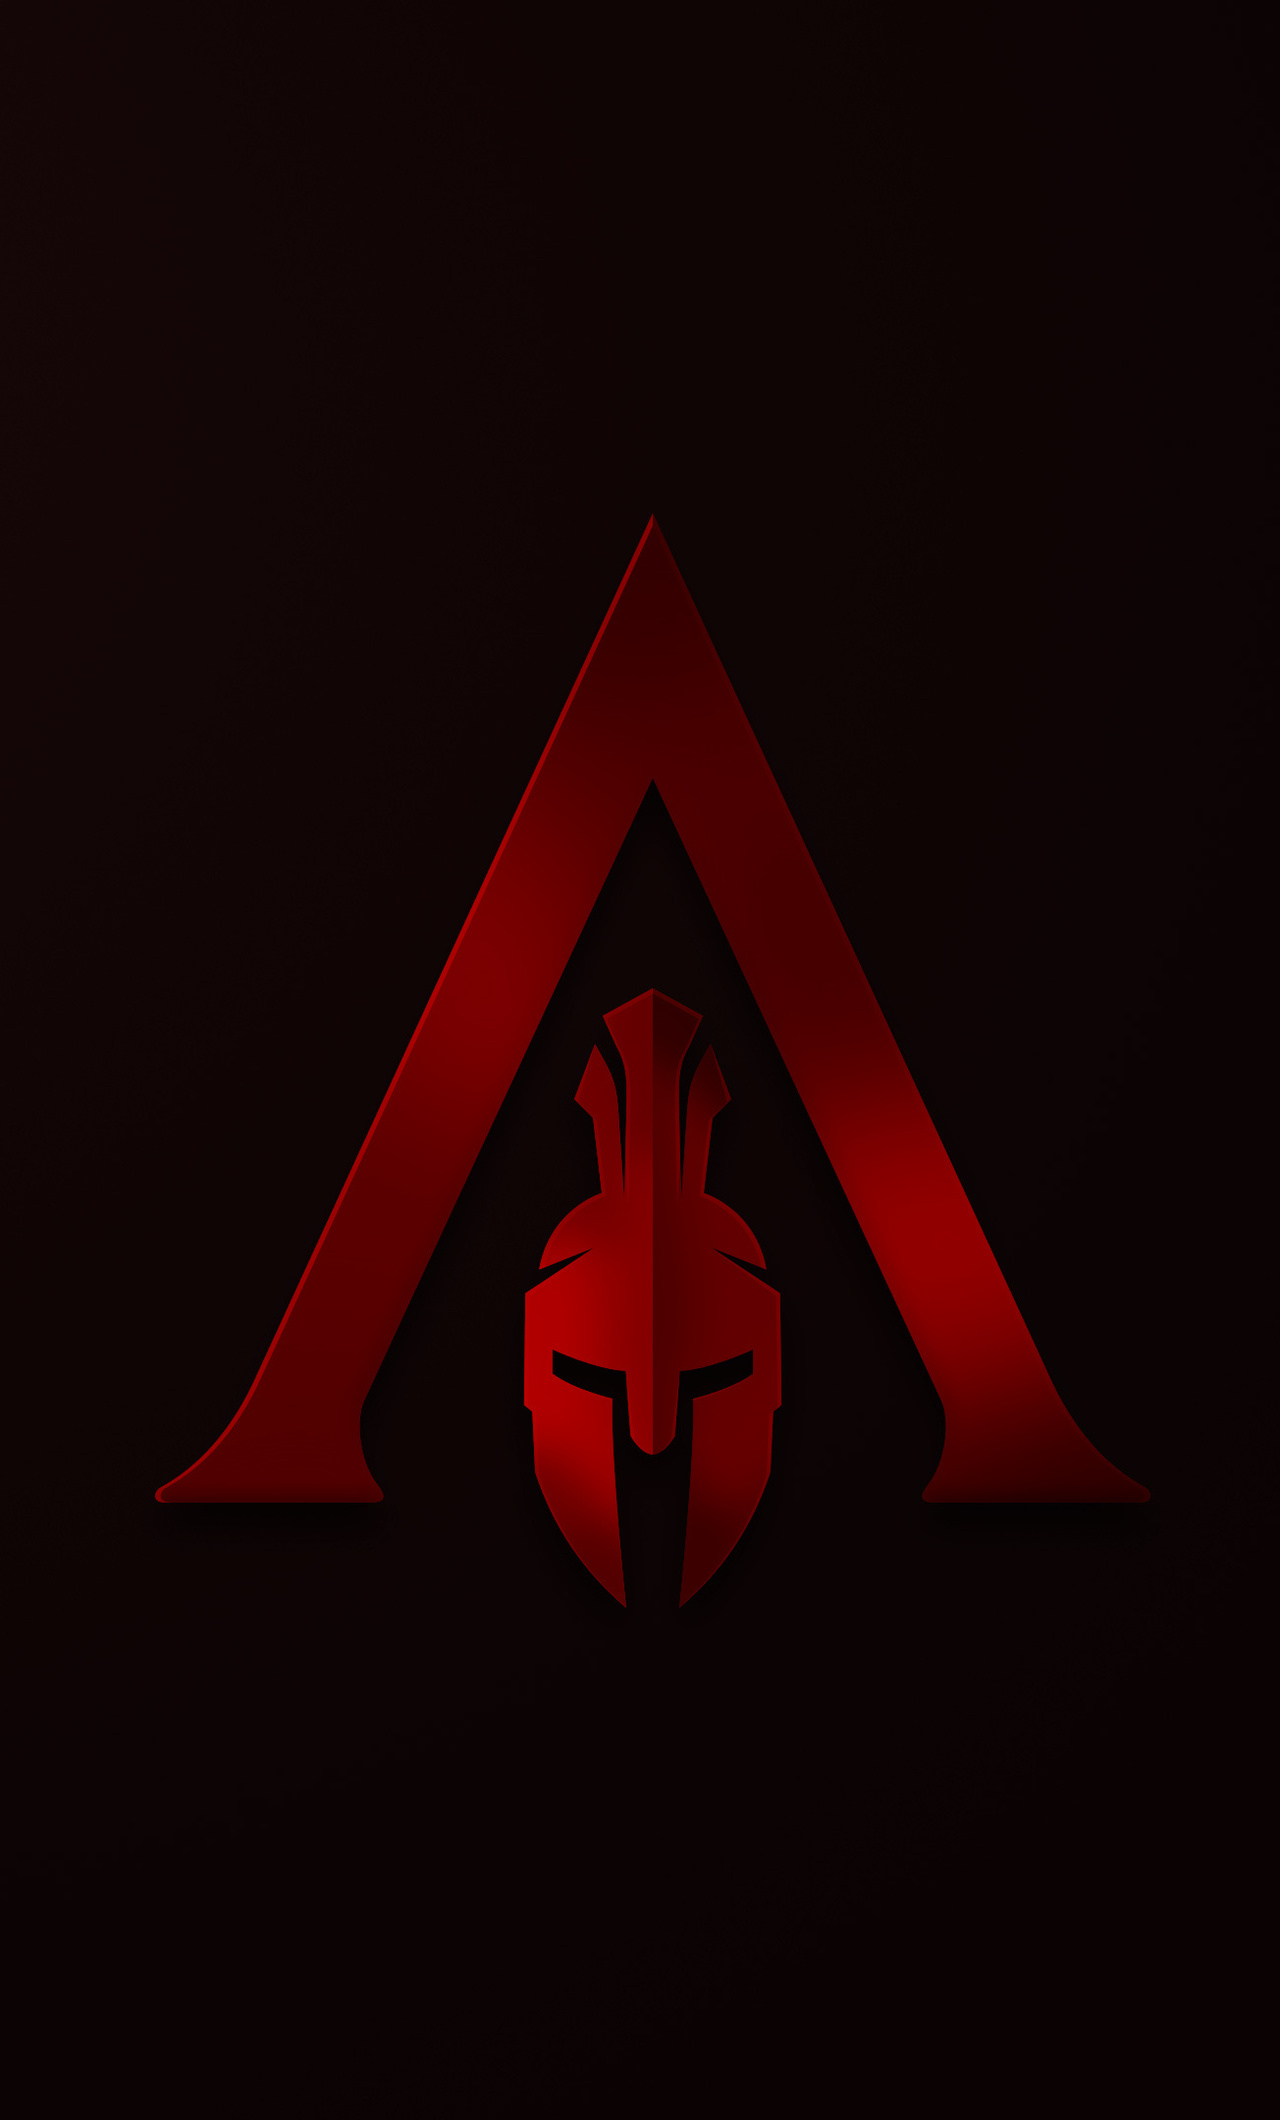 1280x2120 Assassins Creed Odyssey Minimalism Logo 4k Iphone 6 Hd